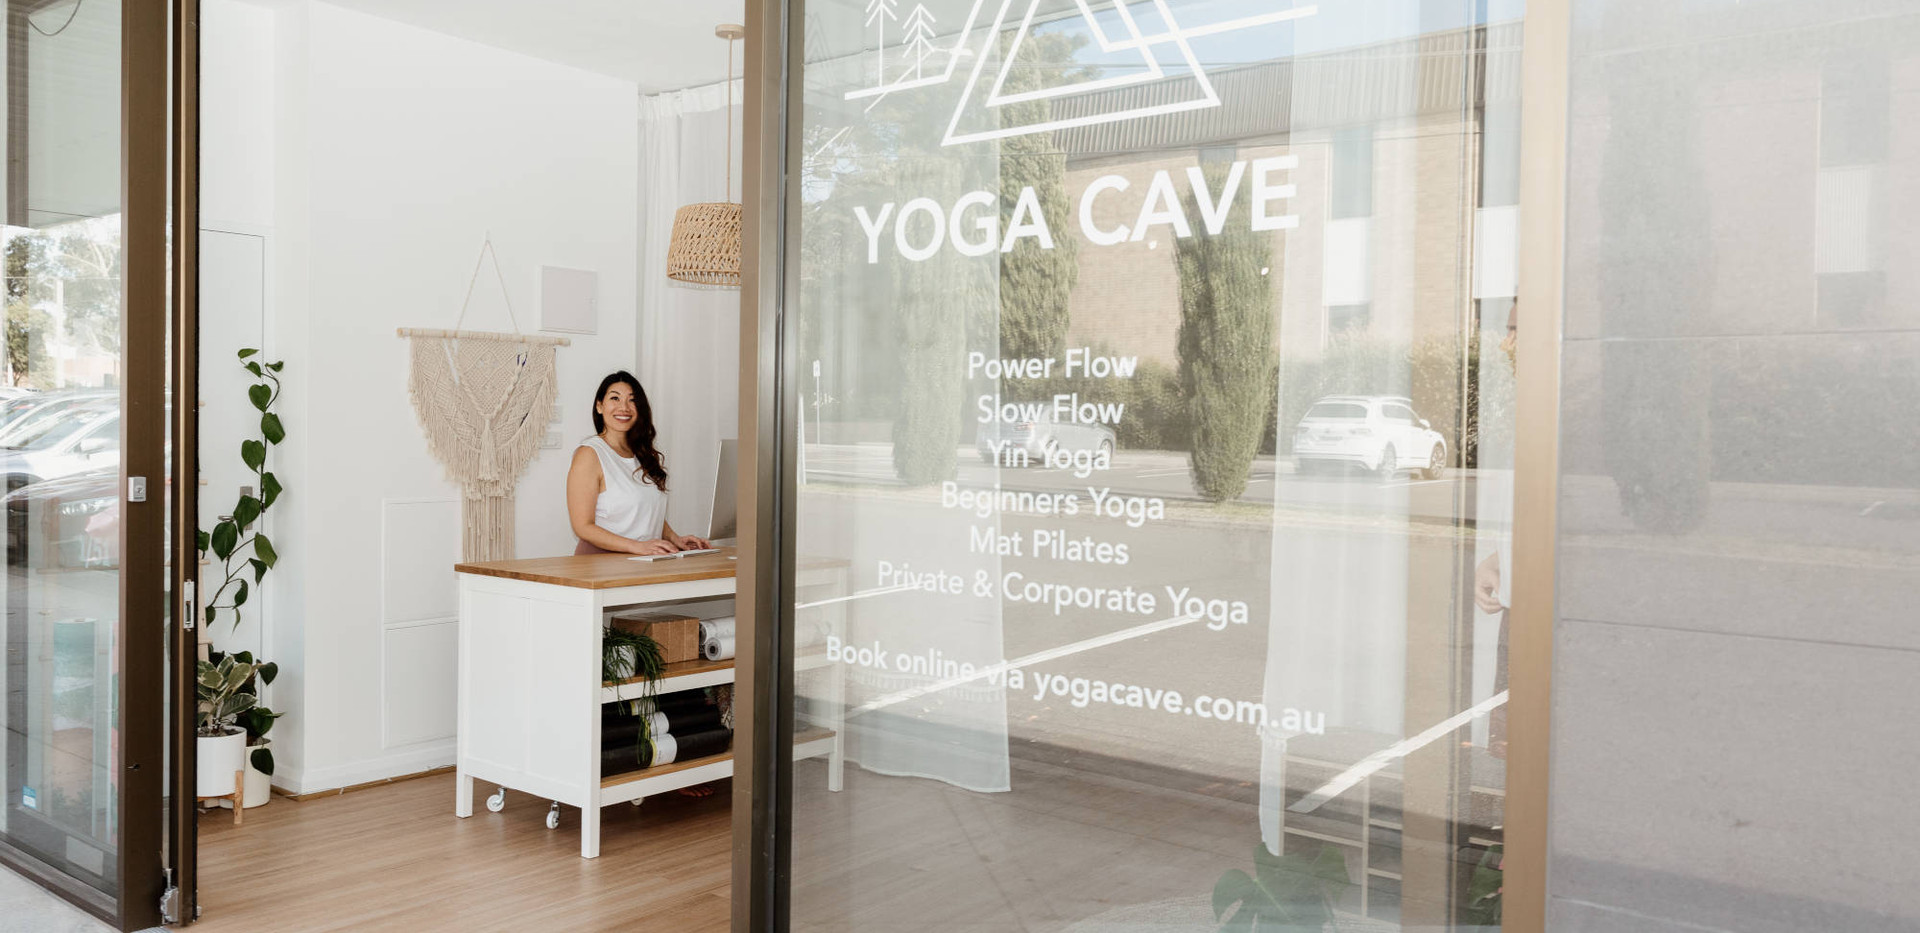 Yoga Cave Studio Entrance